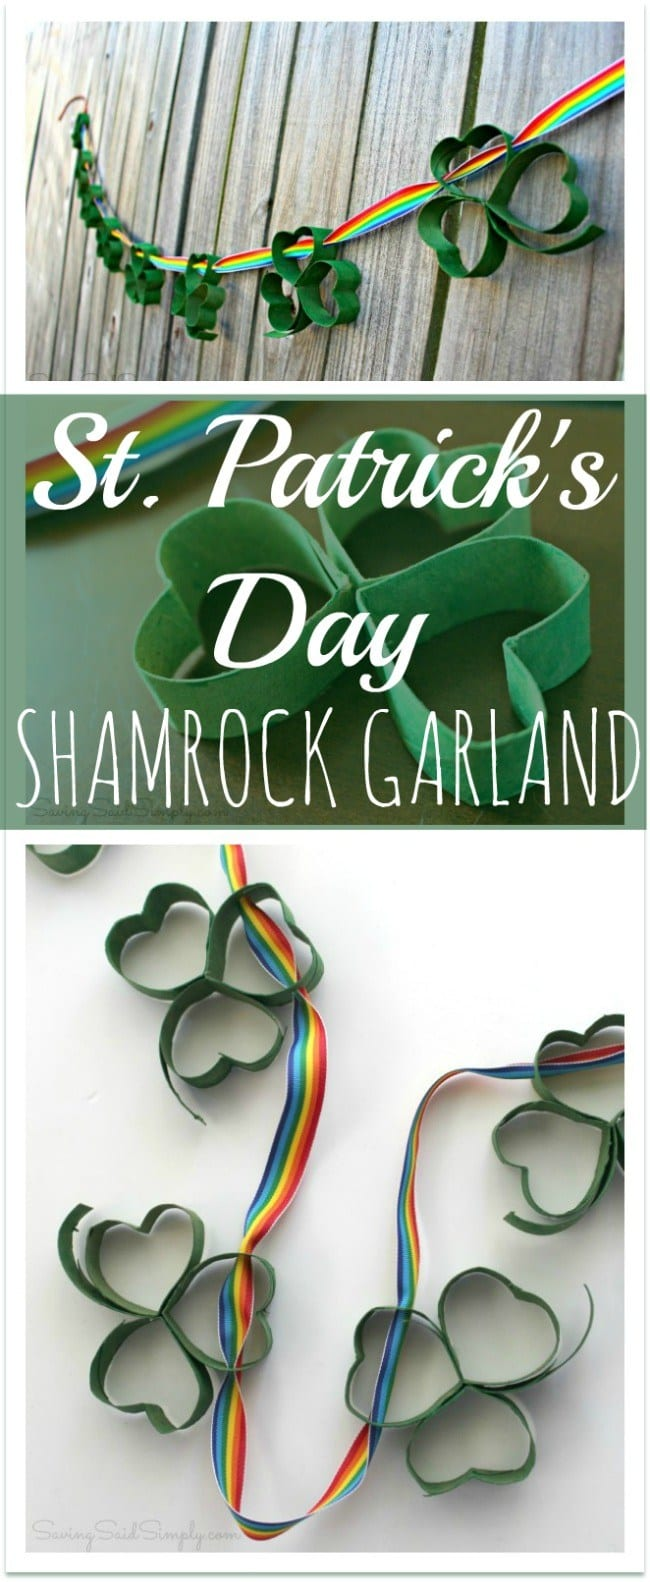 14 Simple St. Patrick's Day DIYs10